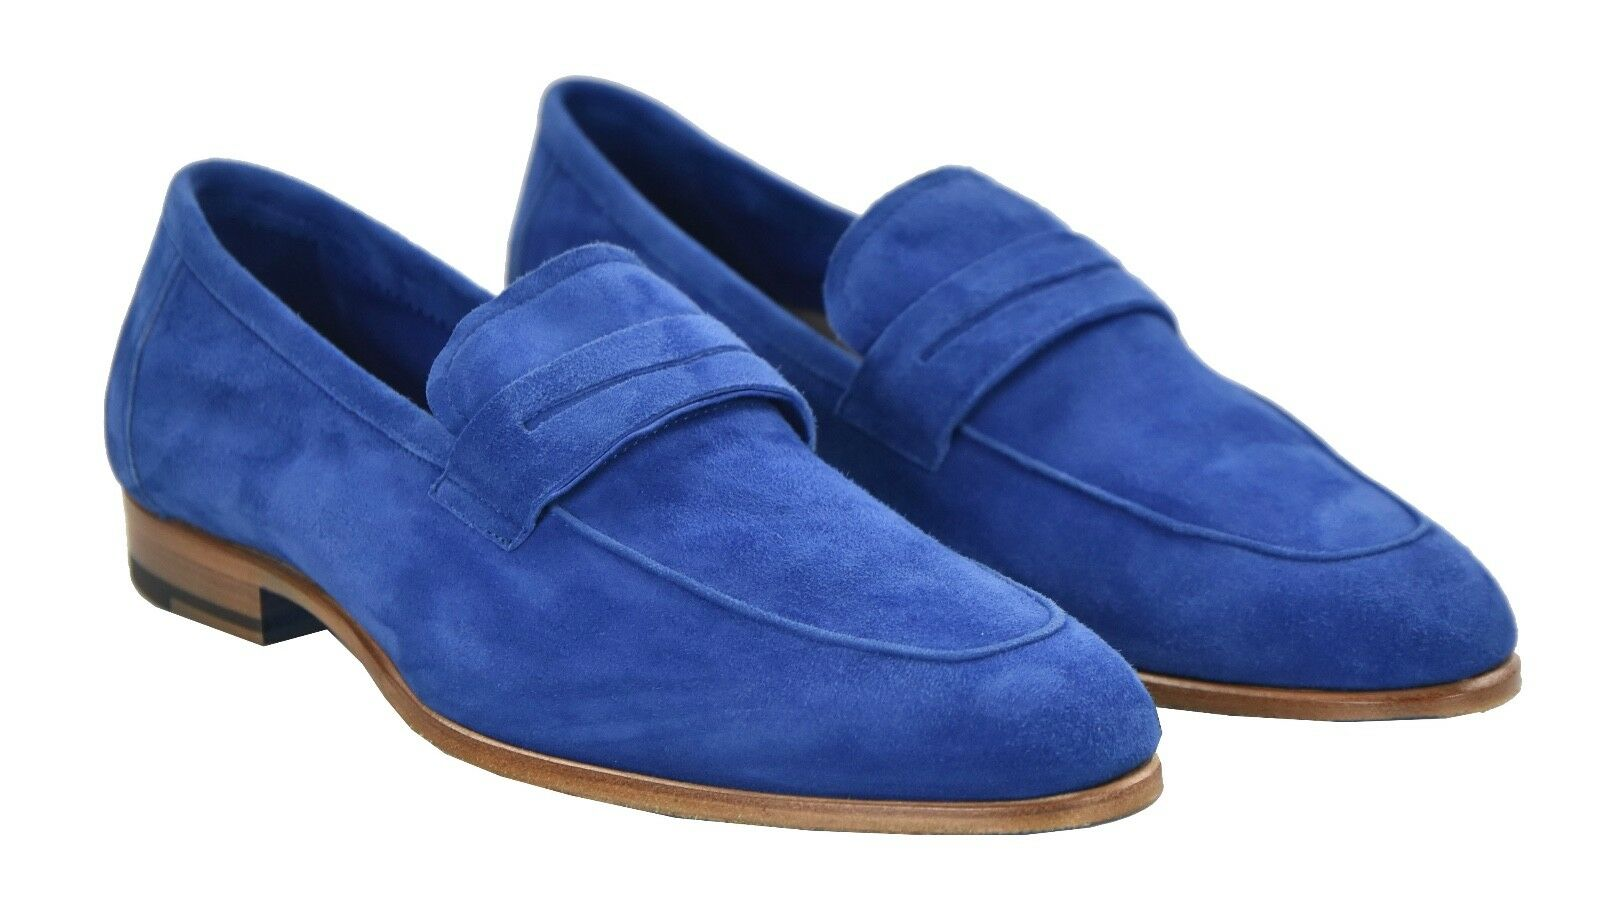 NEW KITON NAPOLI LOAFERS scarpe 100% LEATHER SUEDE Dimensione 6 US 39 EU 19O42